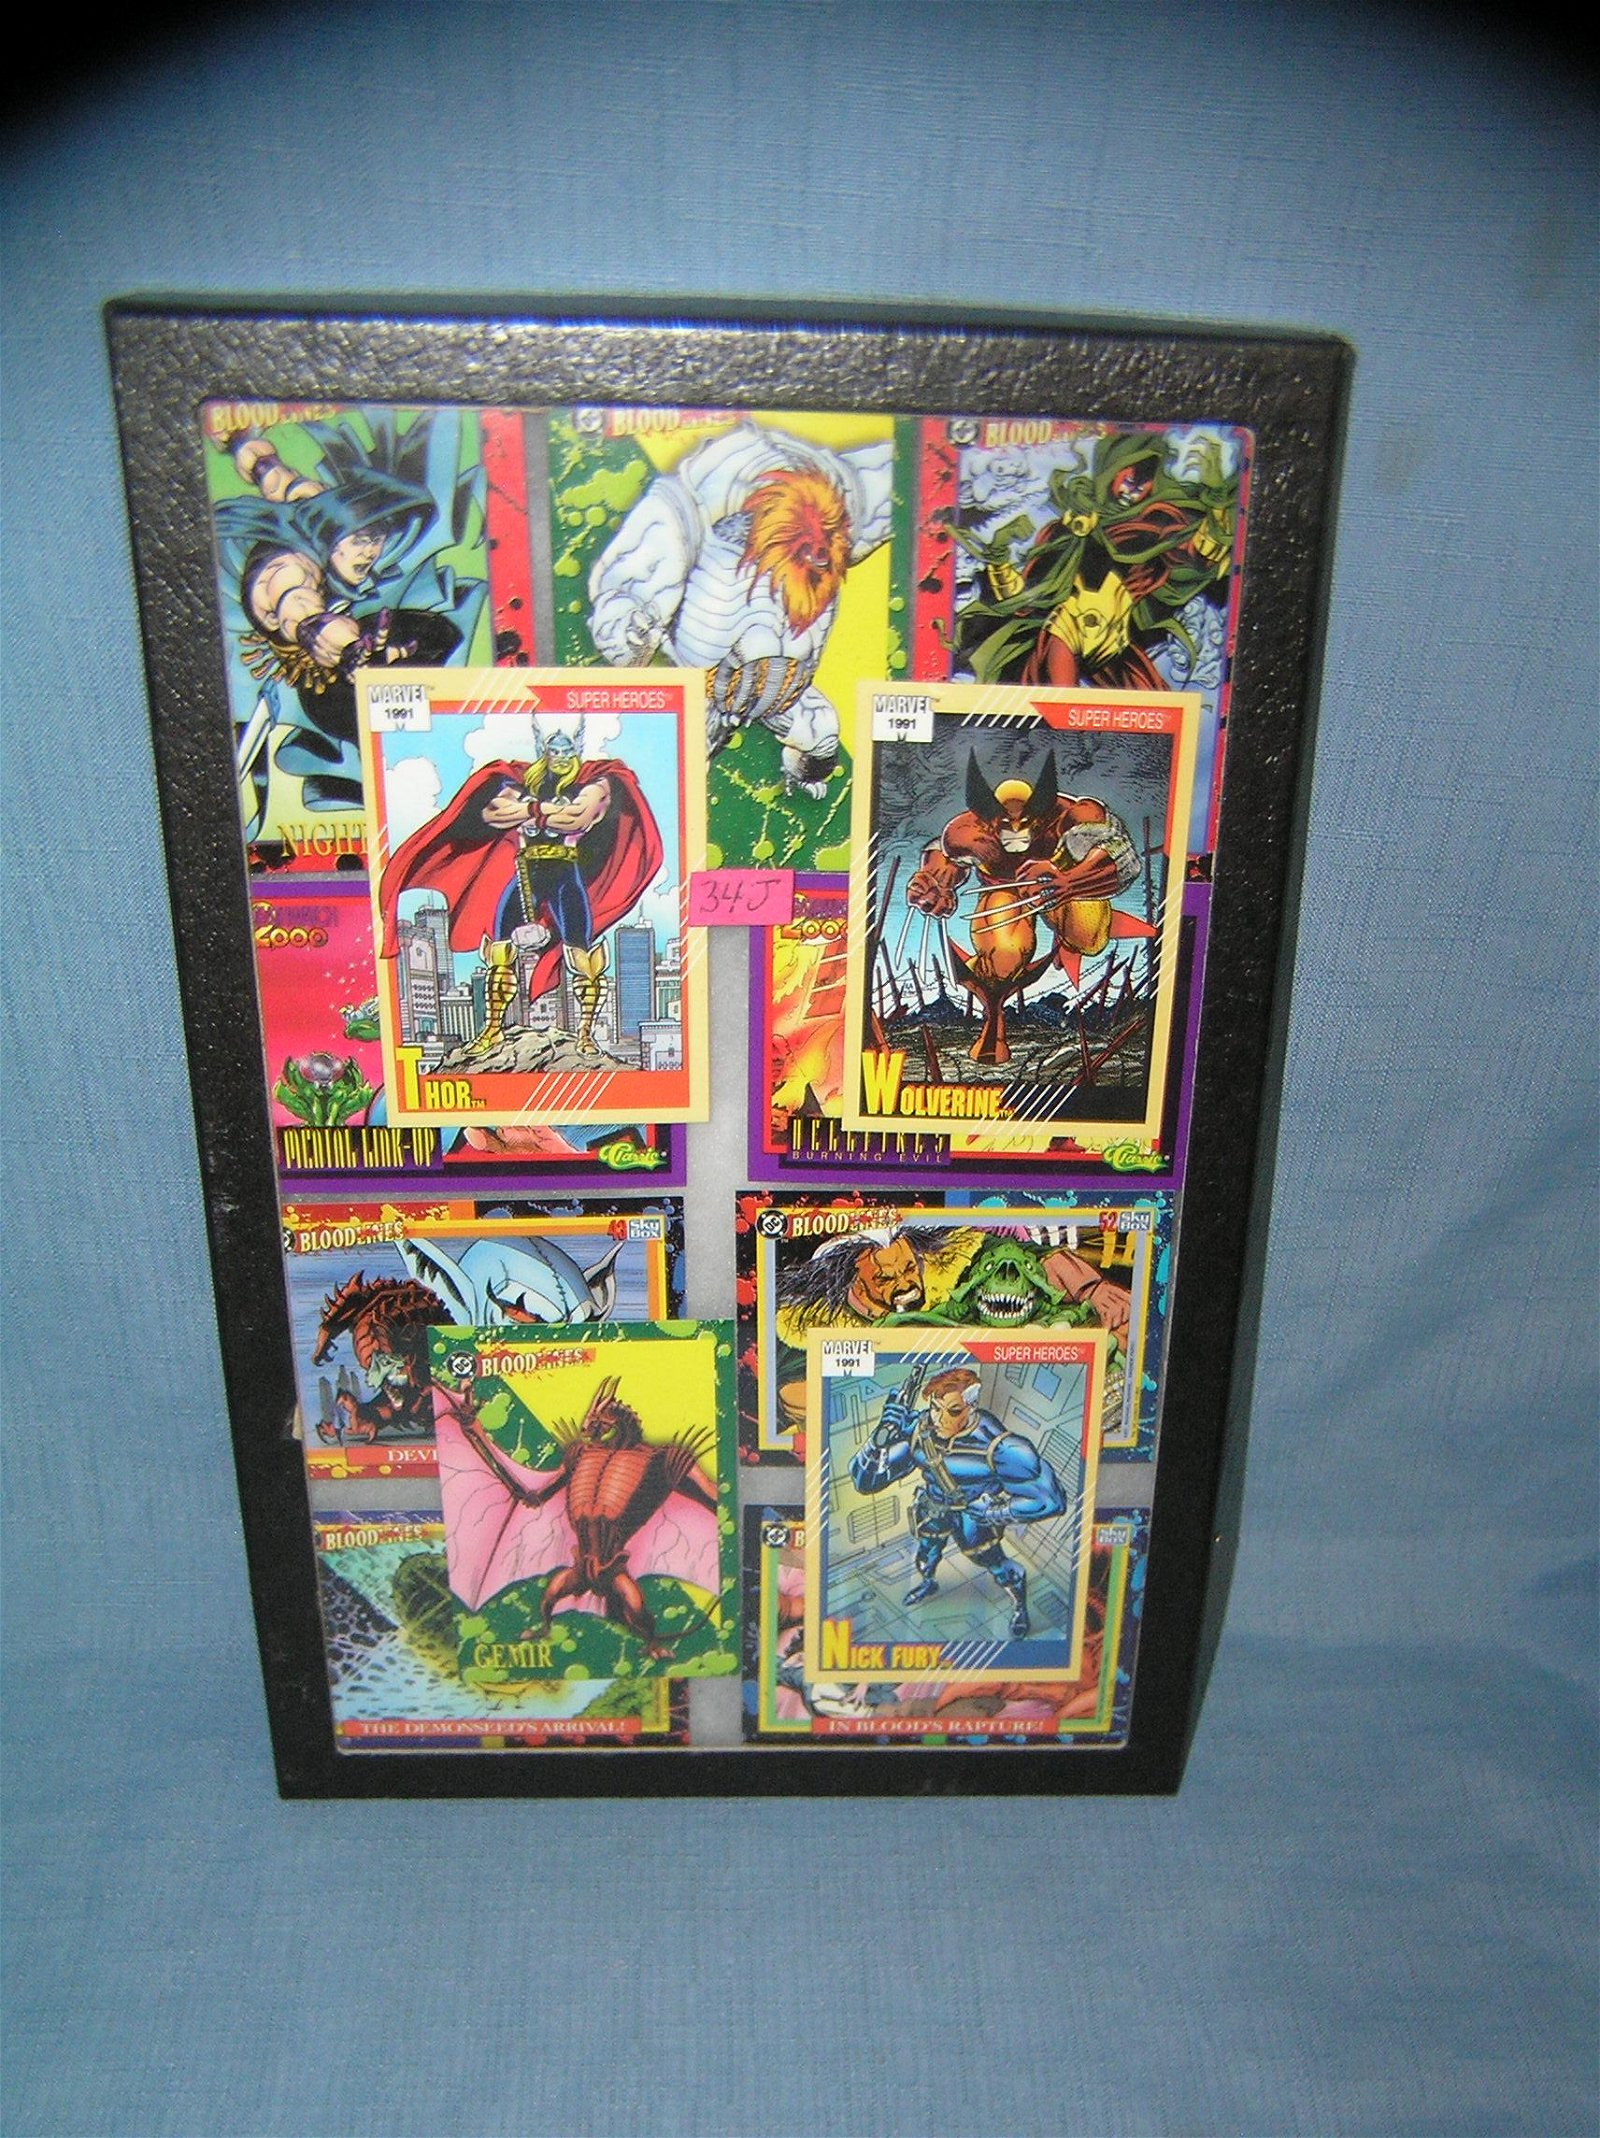 Superhero and villian nonsports collector cards